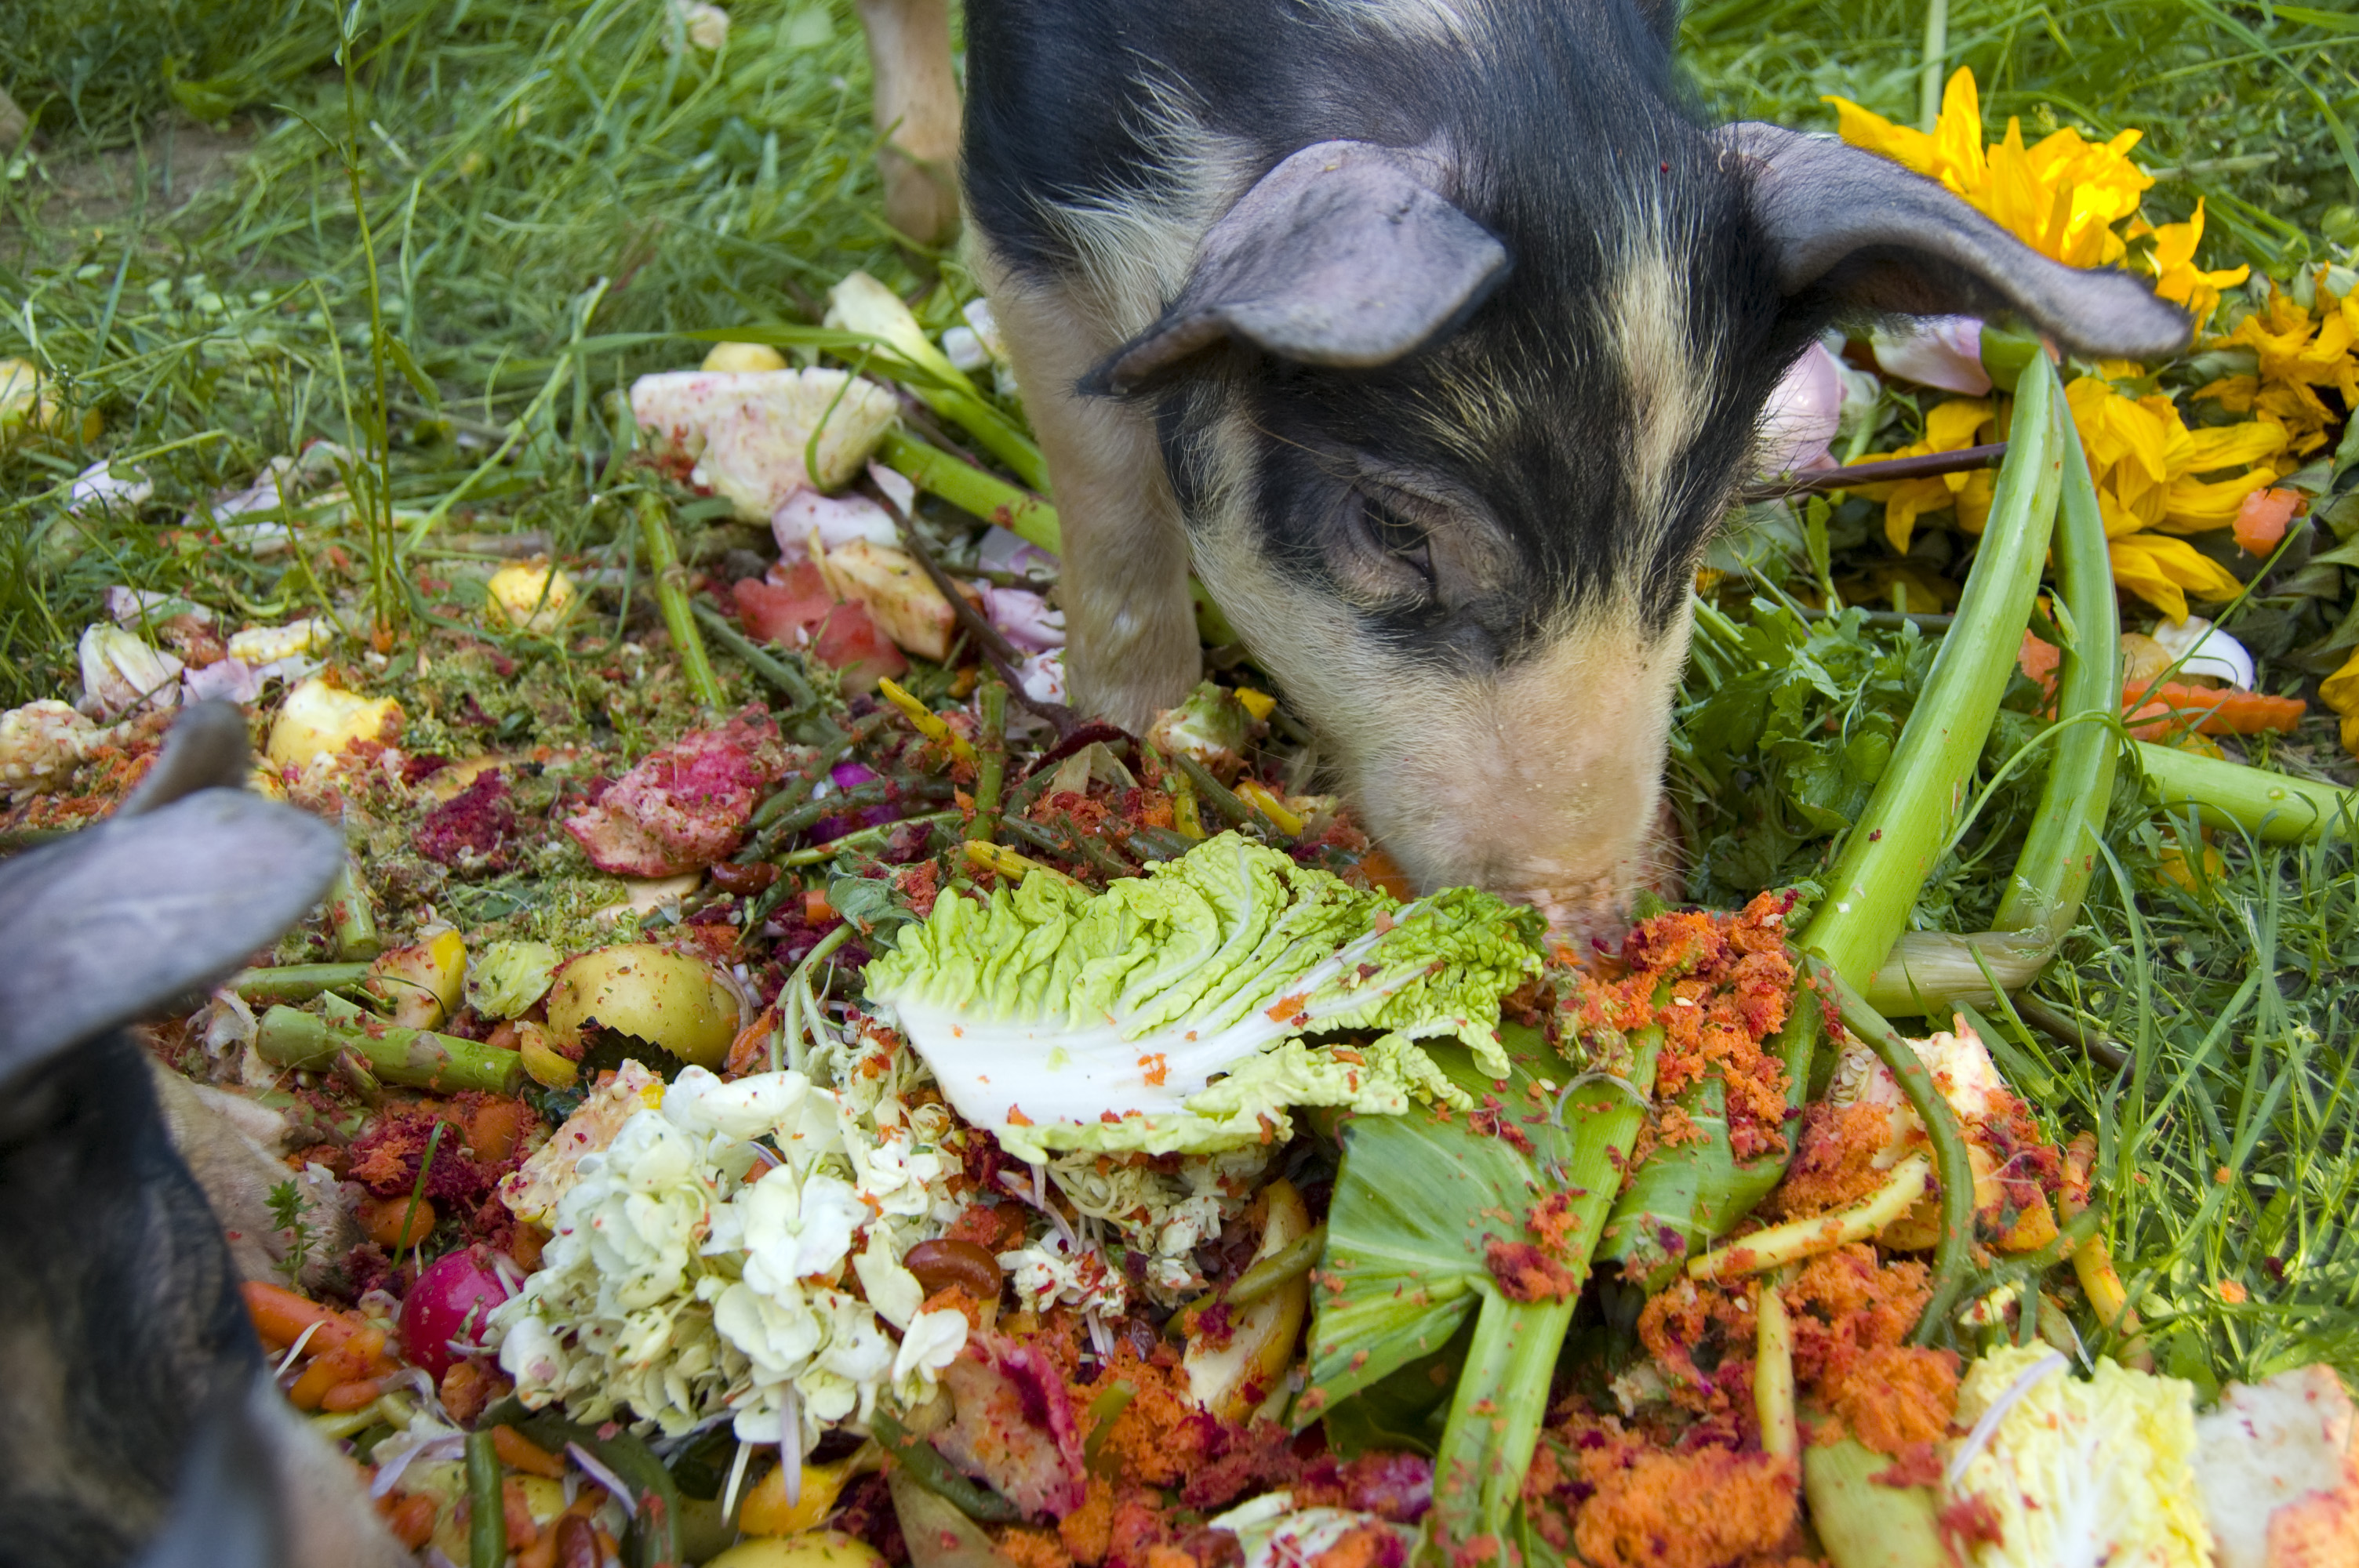 Best Organic Food For Pigs